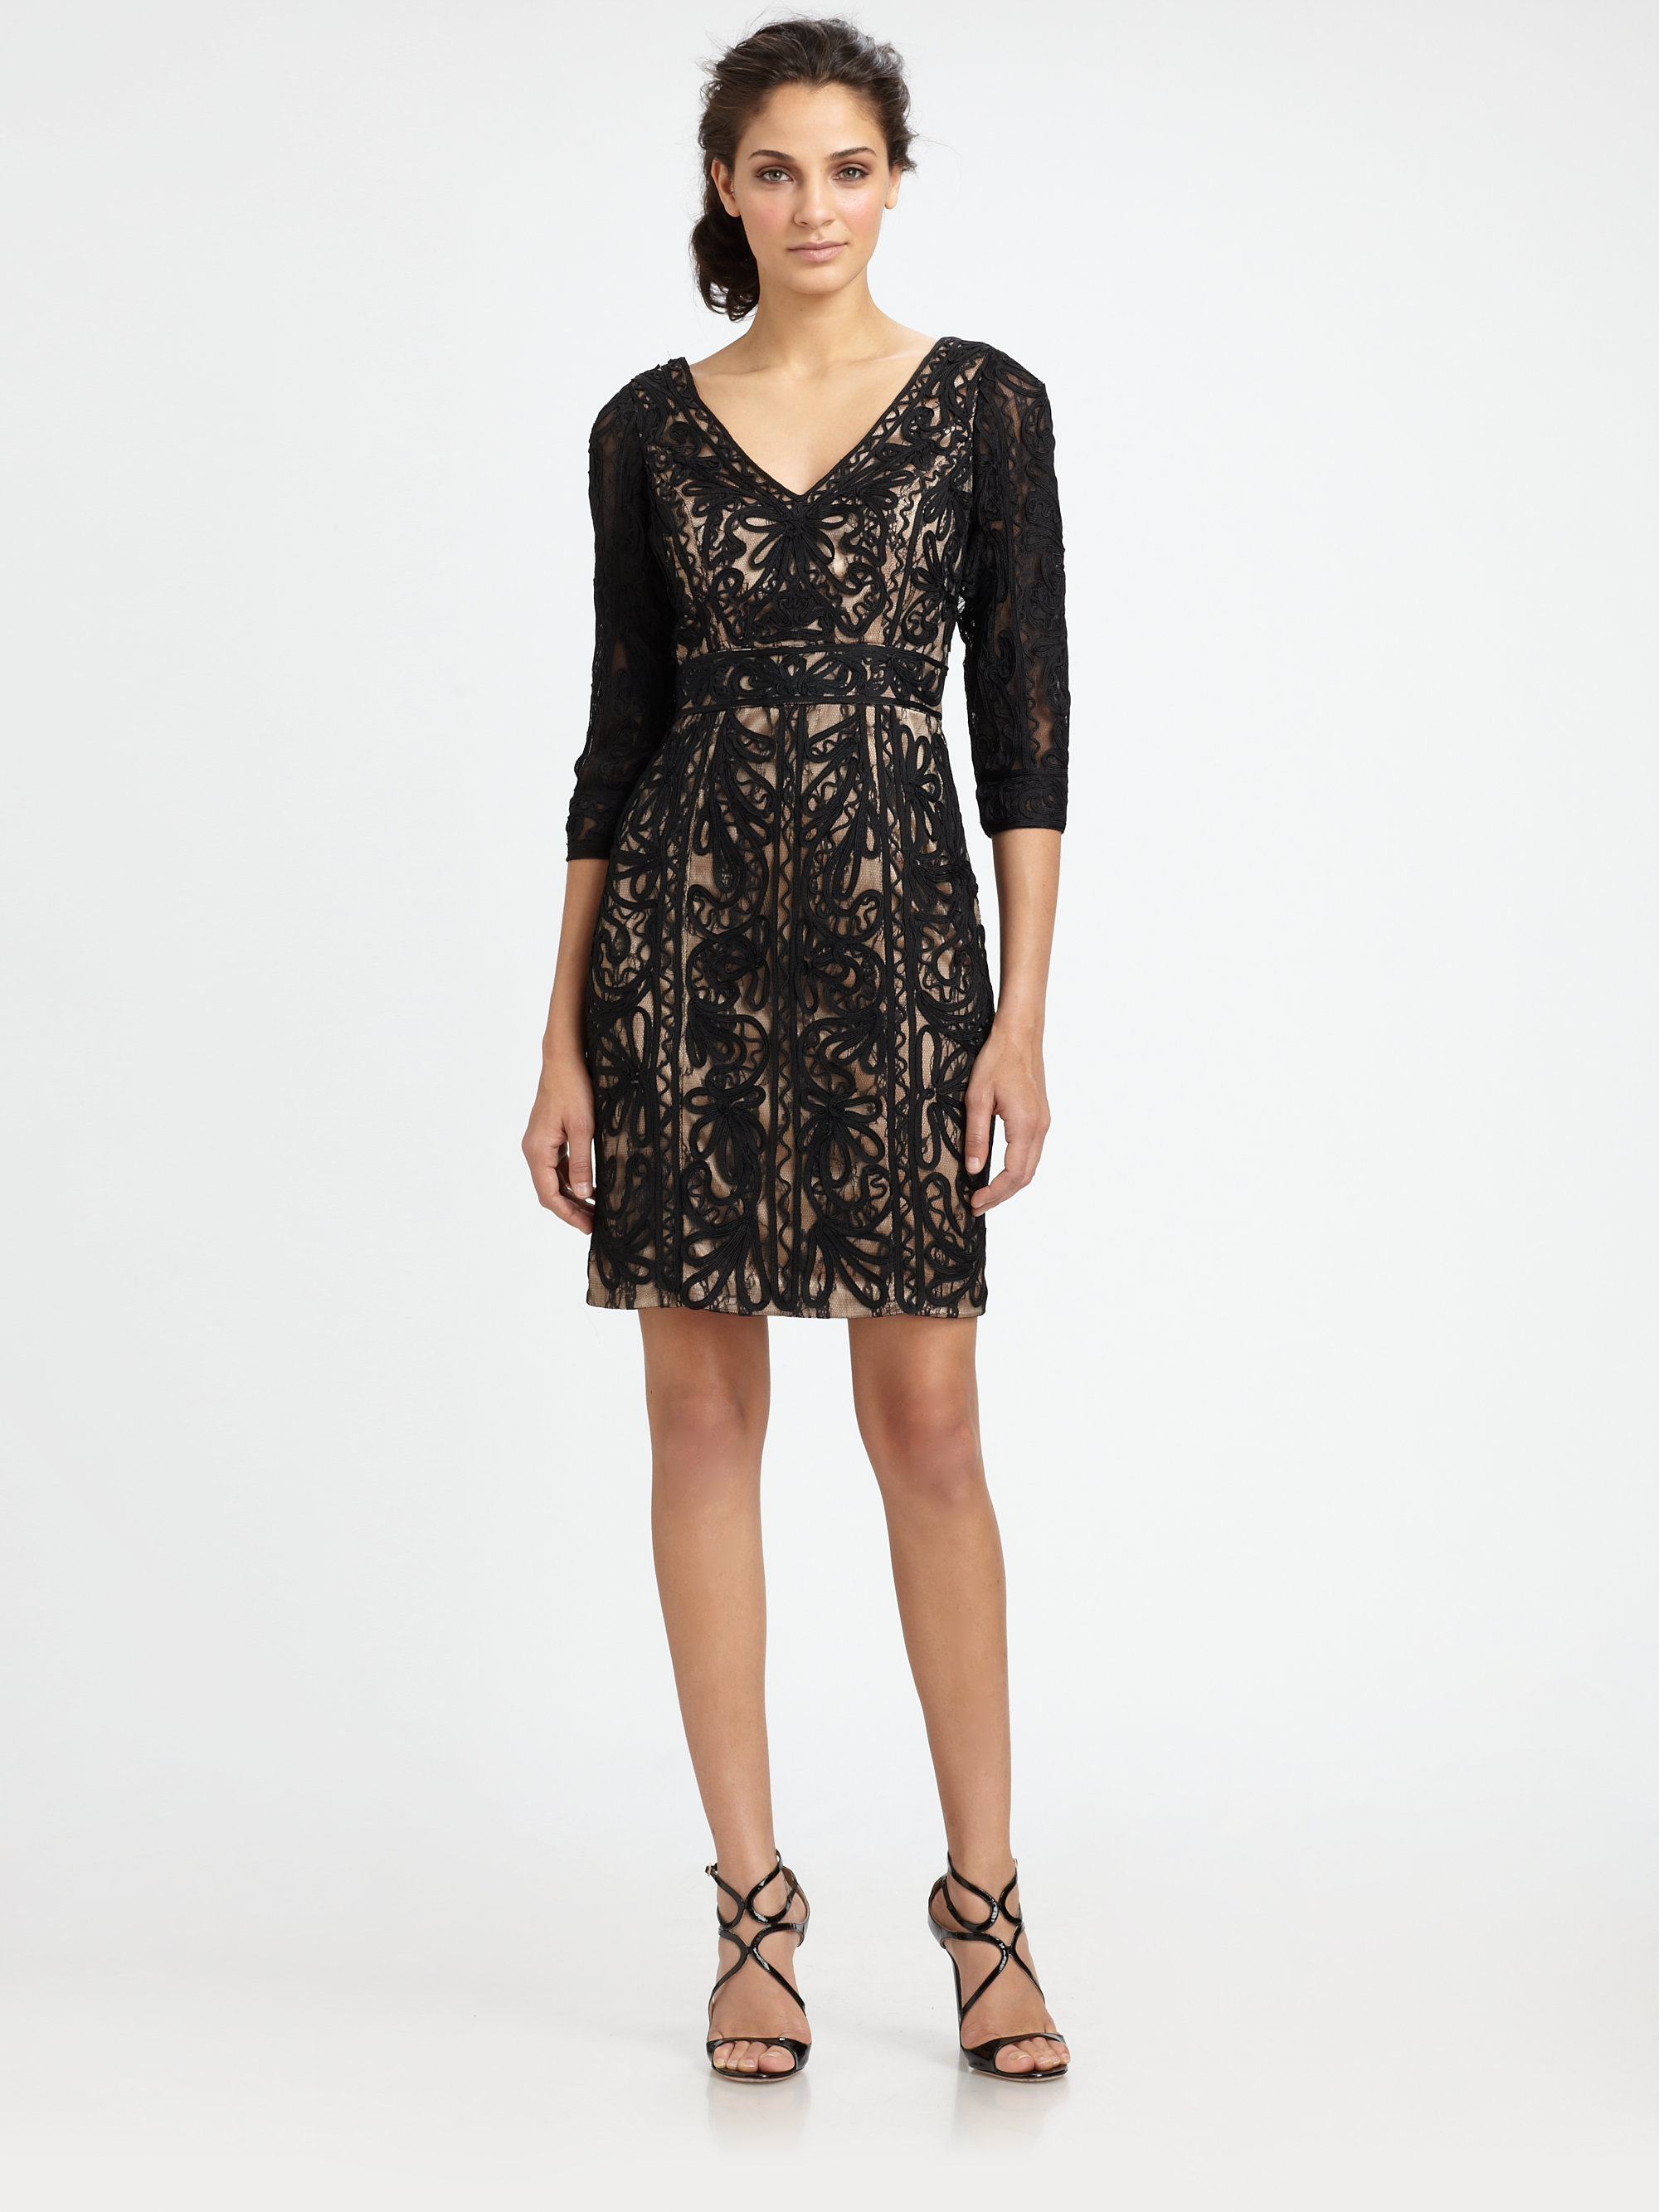 84ac28a606cd0 Lyst - Sue Wong Embroidered Lace Dress in Black